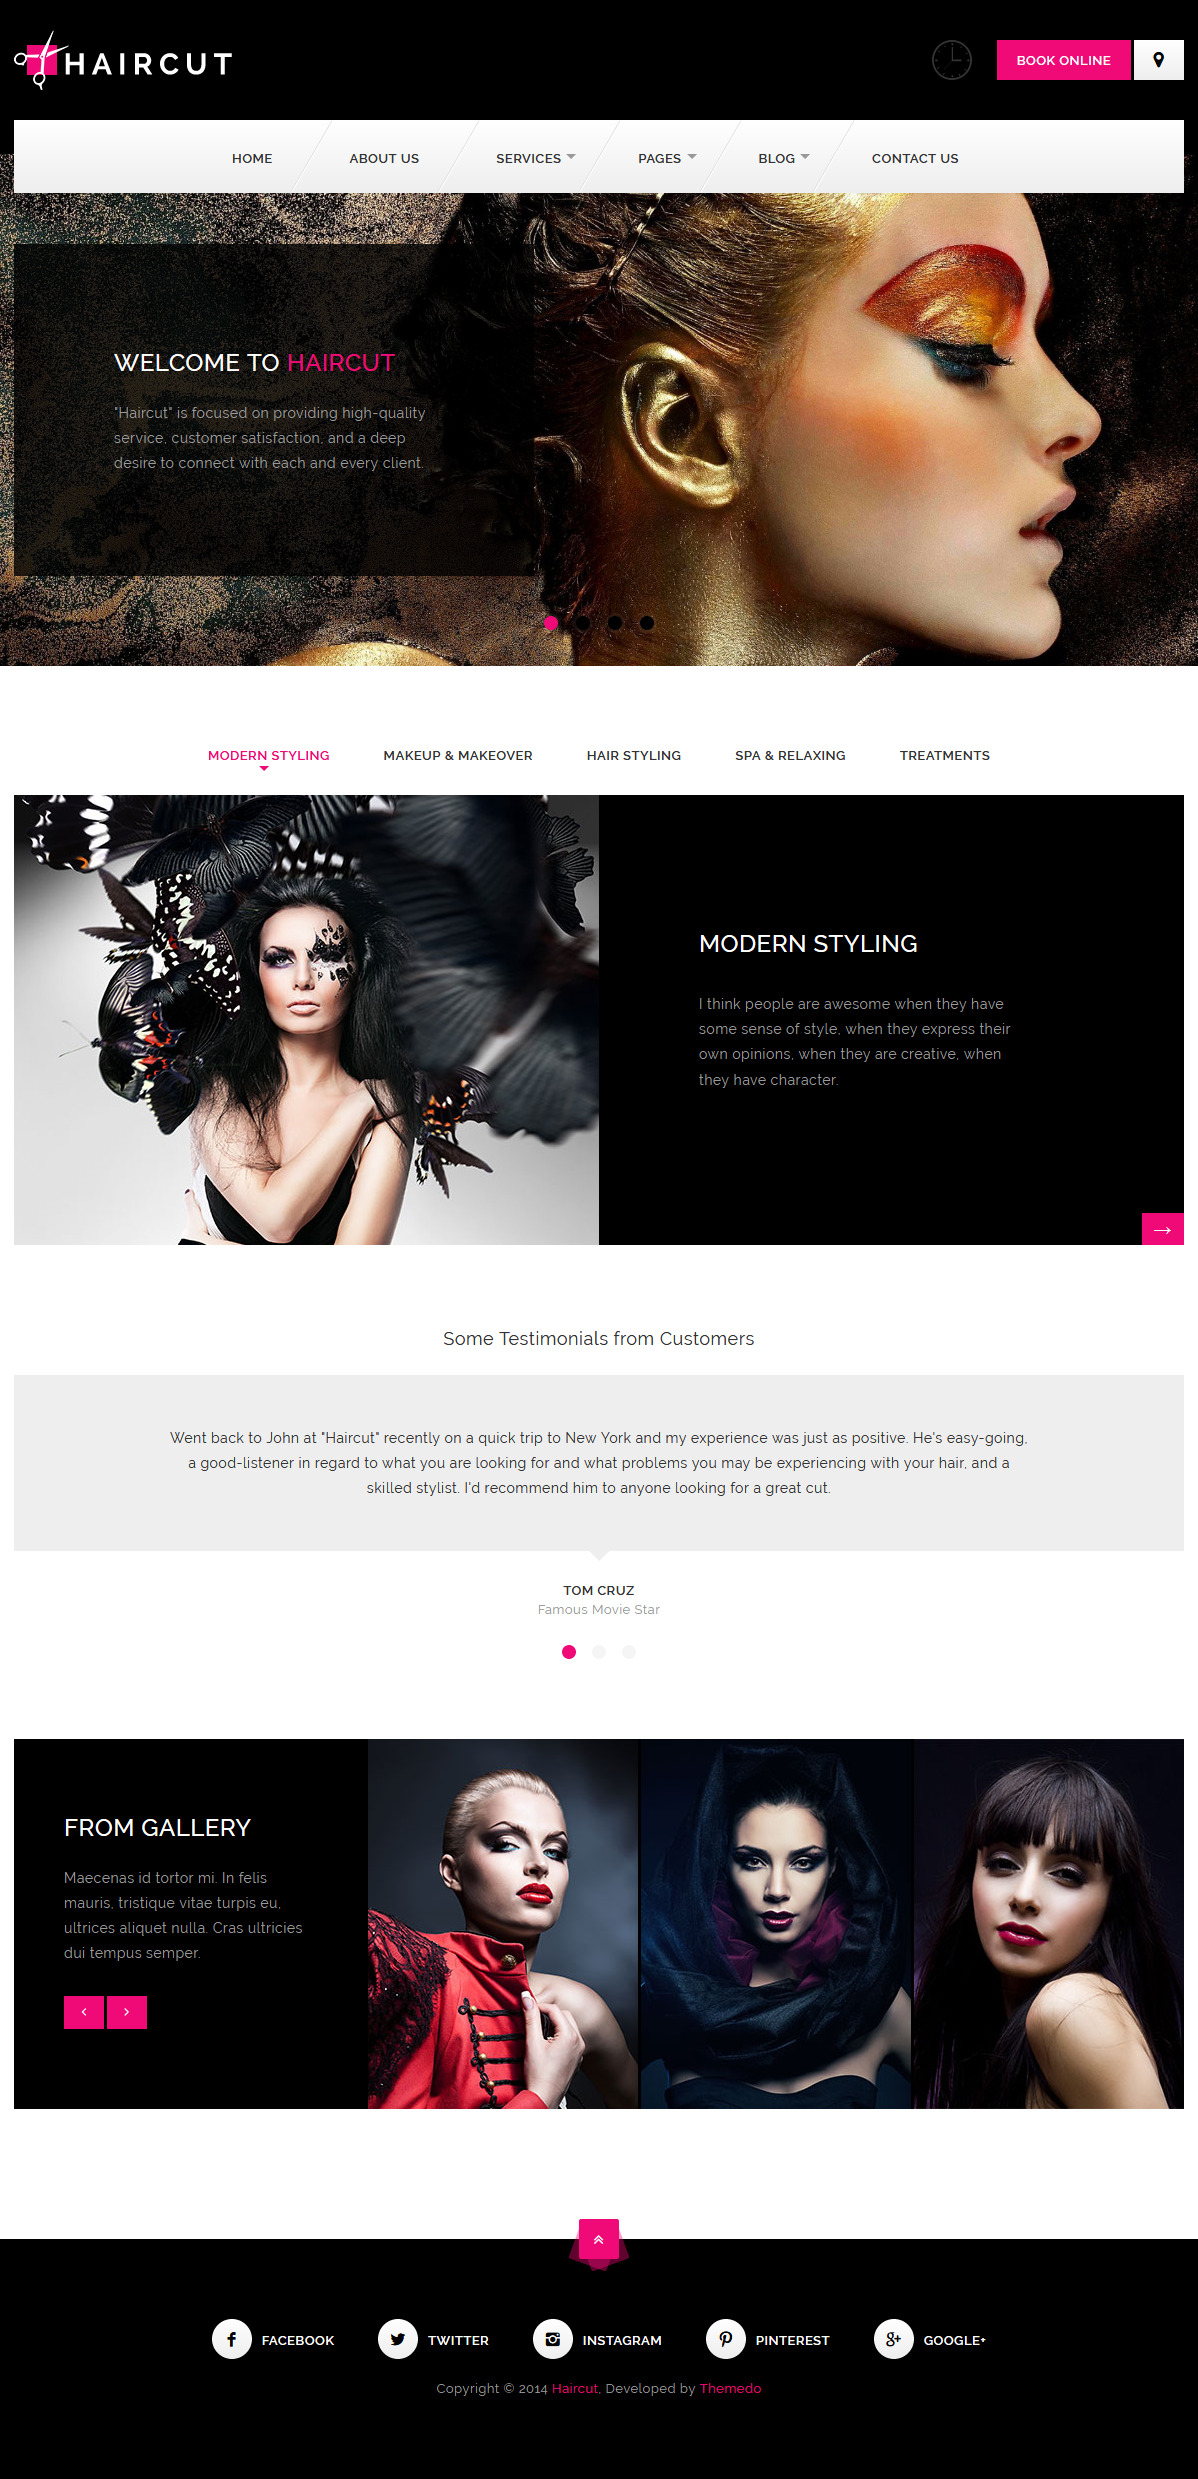 haircut best premium spa beauty wordpress theme - 10+ Best Premium Spa and Beauty WordPress Themes